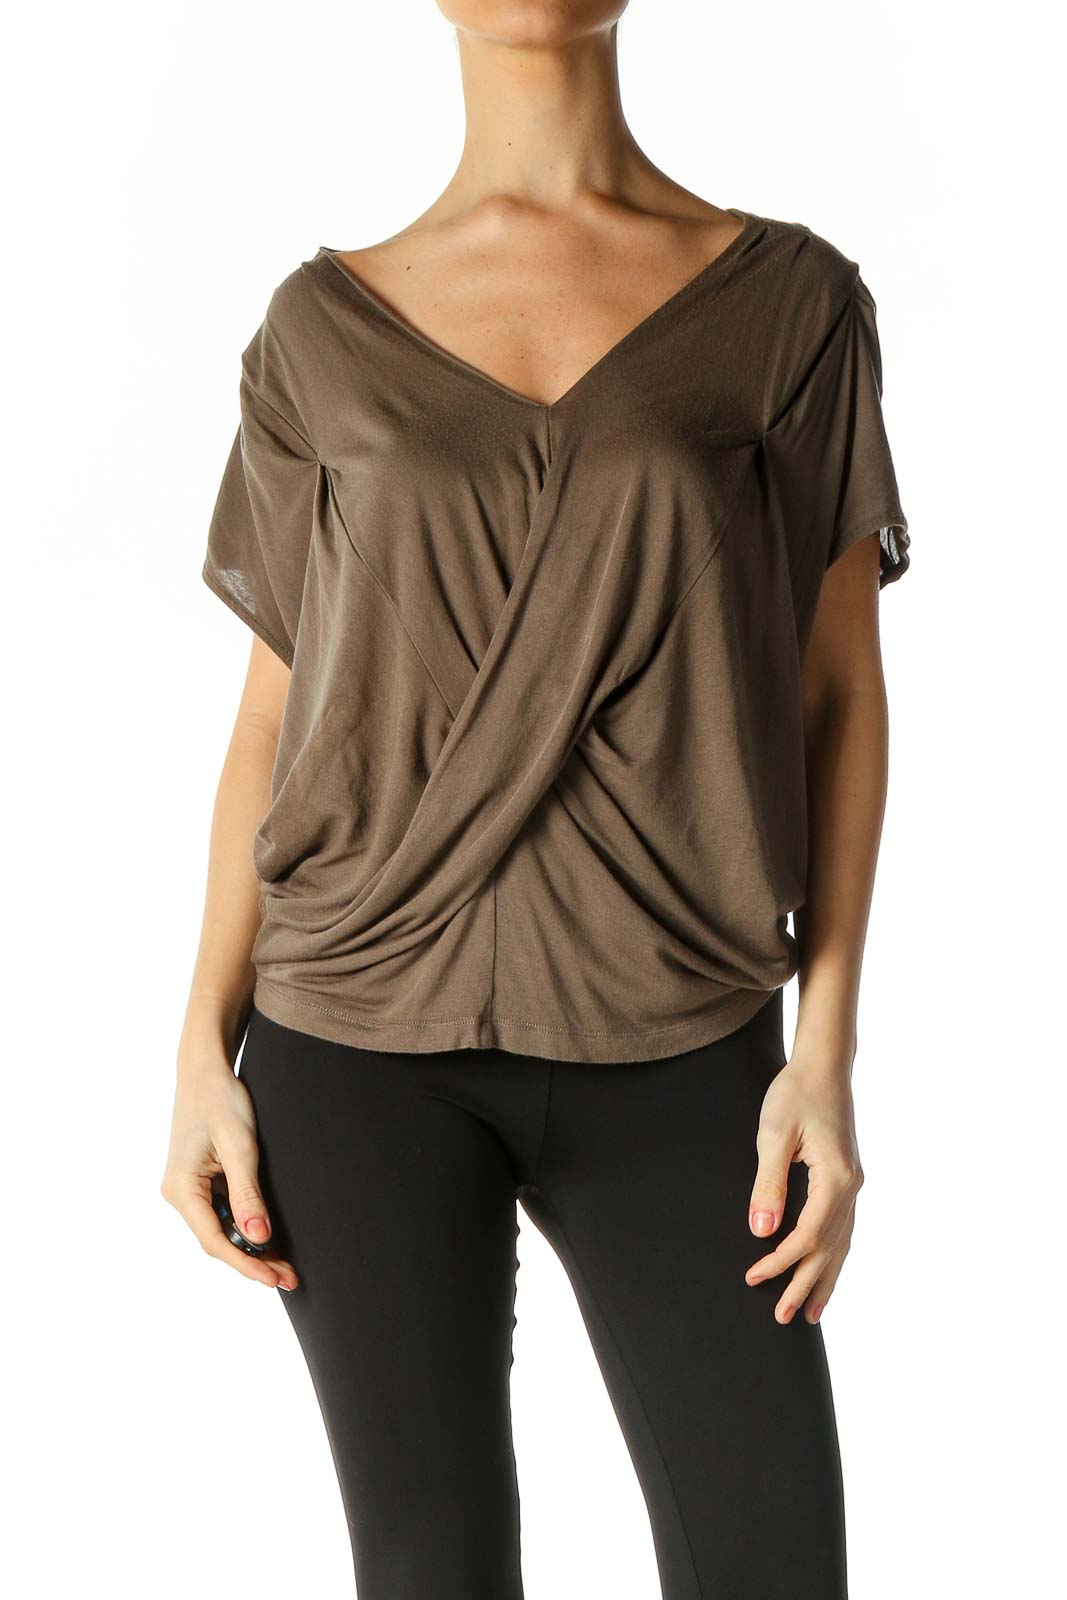 Brown Solid Casual Blouse Front